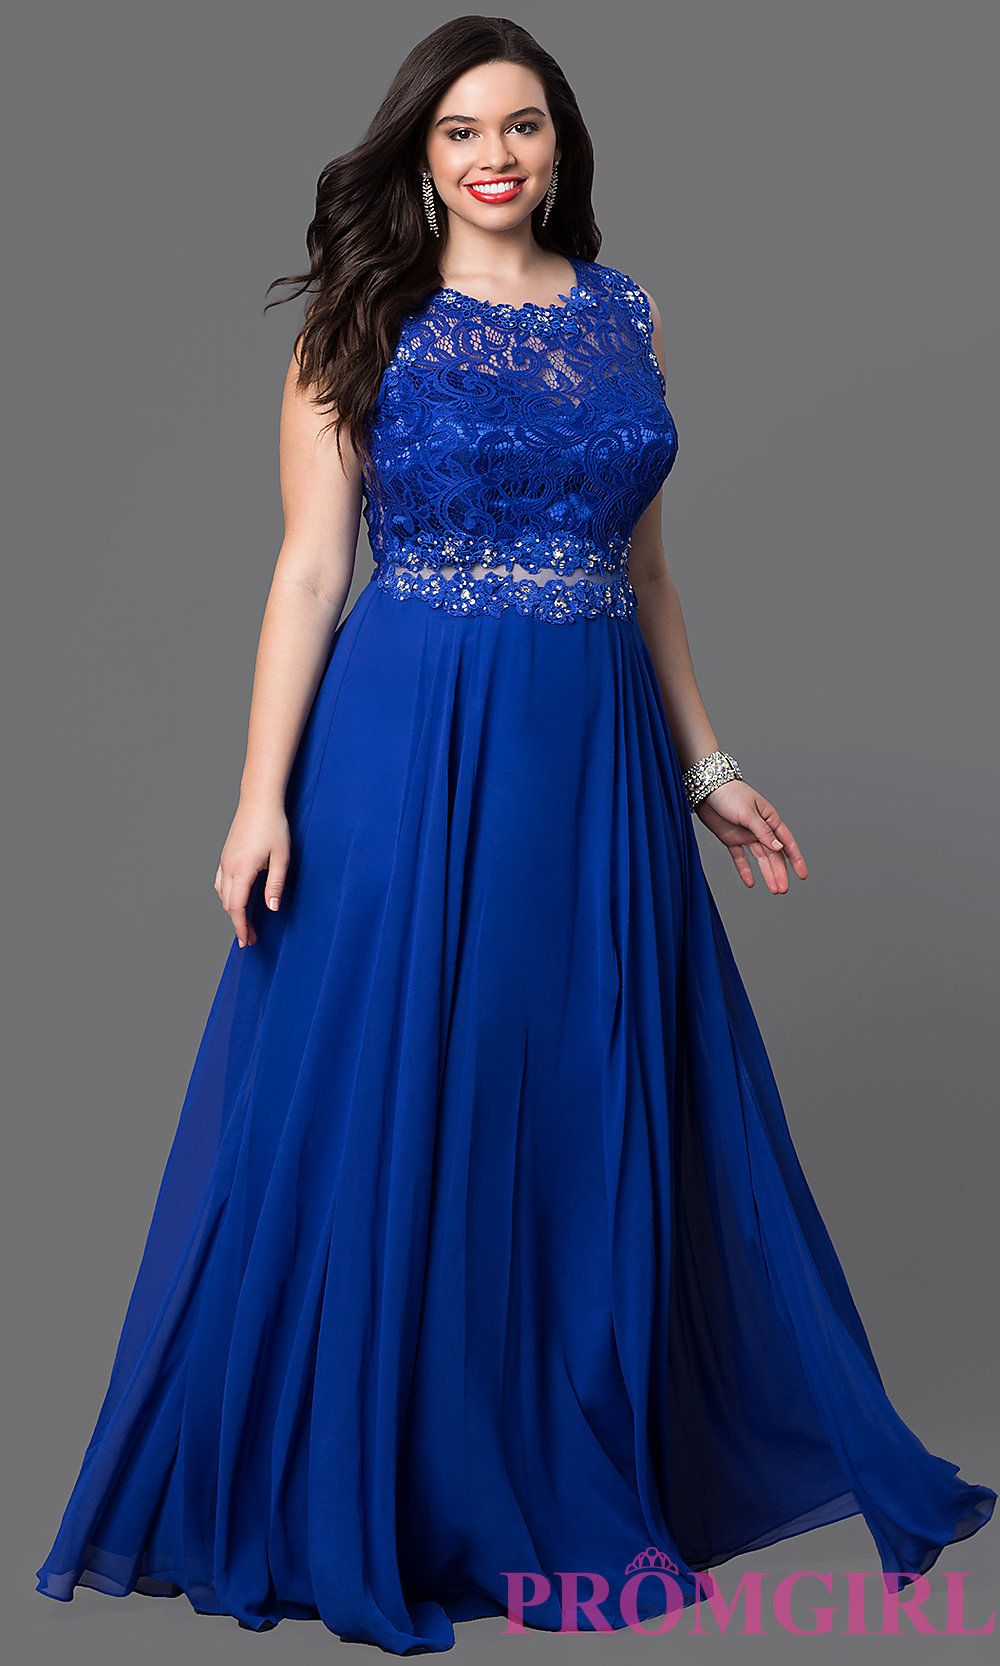 Style dqp front image ropa para gordas pinterest prom